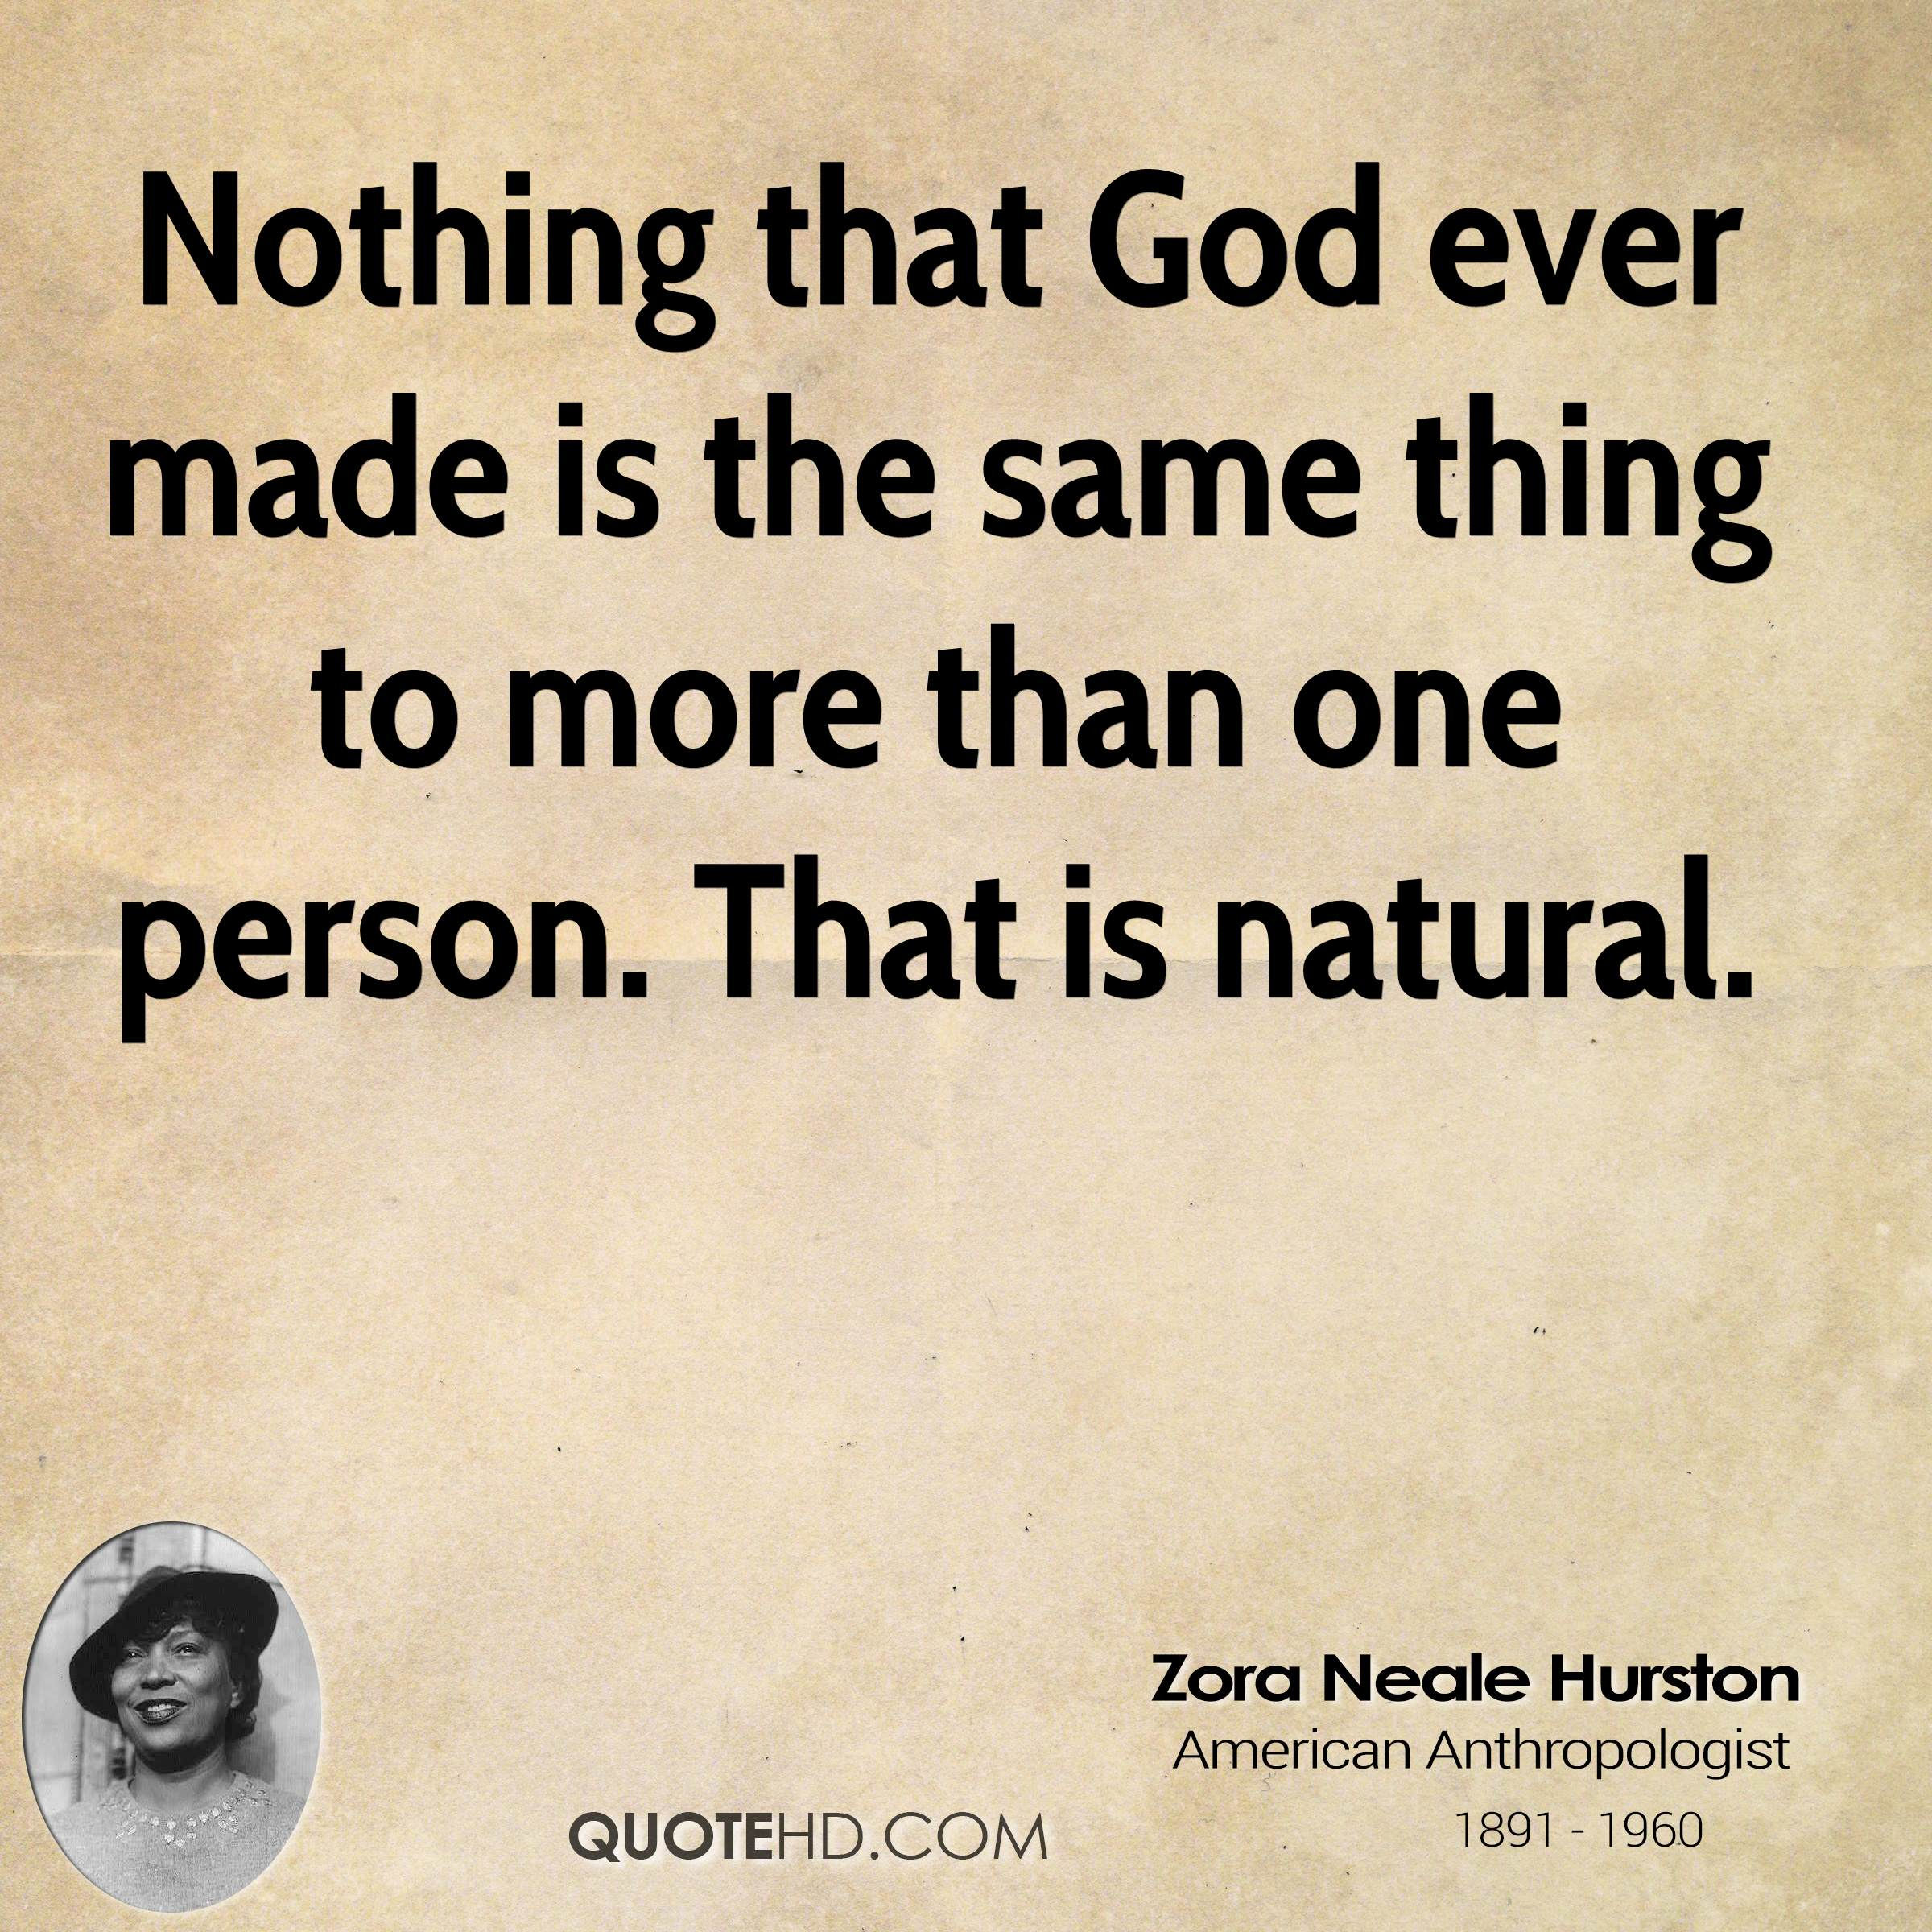 Nothing that God ever made is the same thing to more than one person. That is natural.